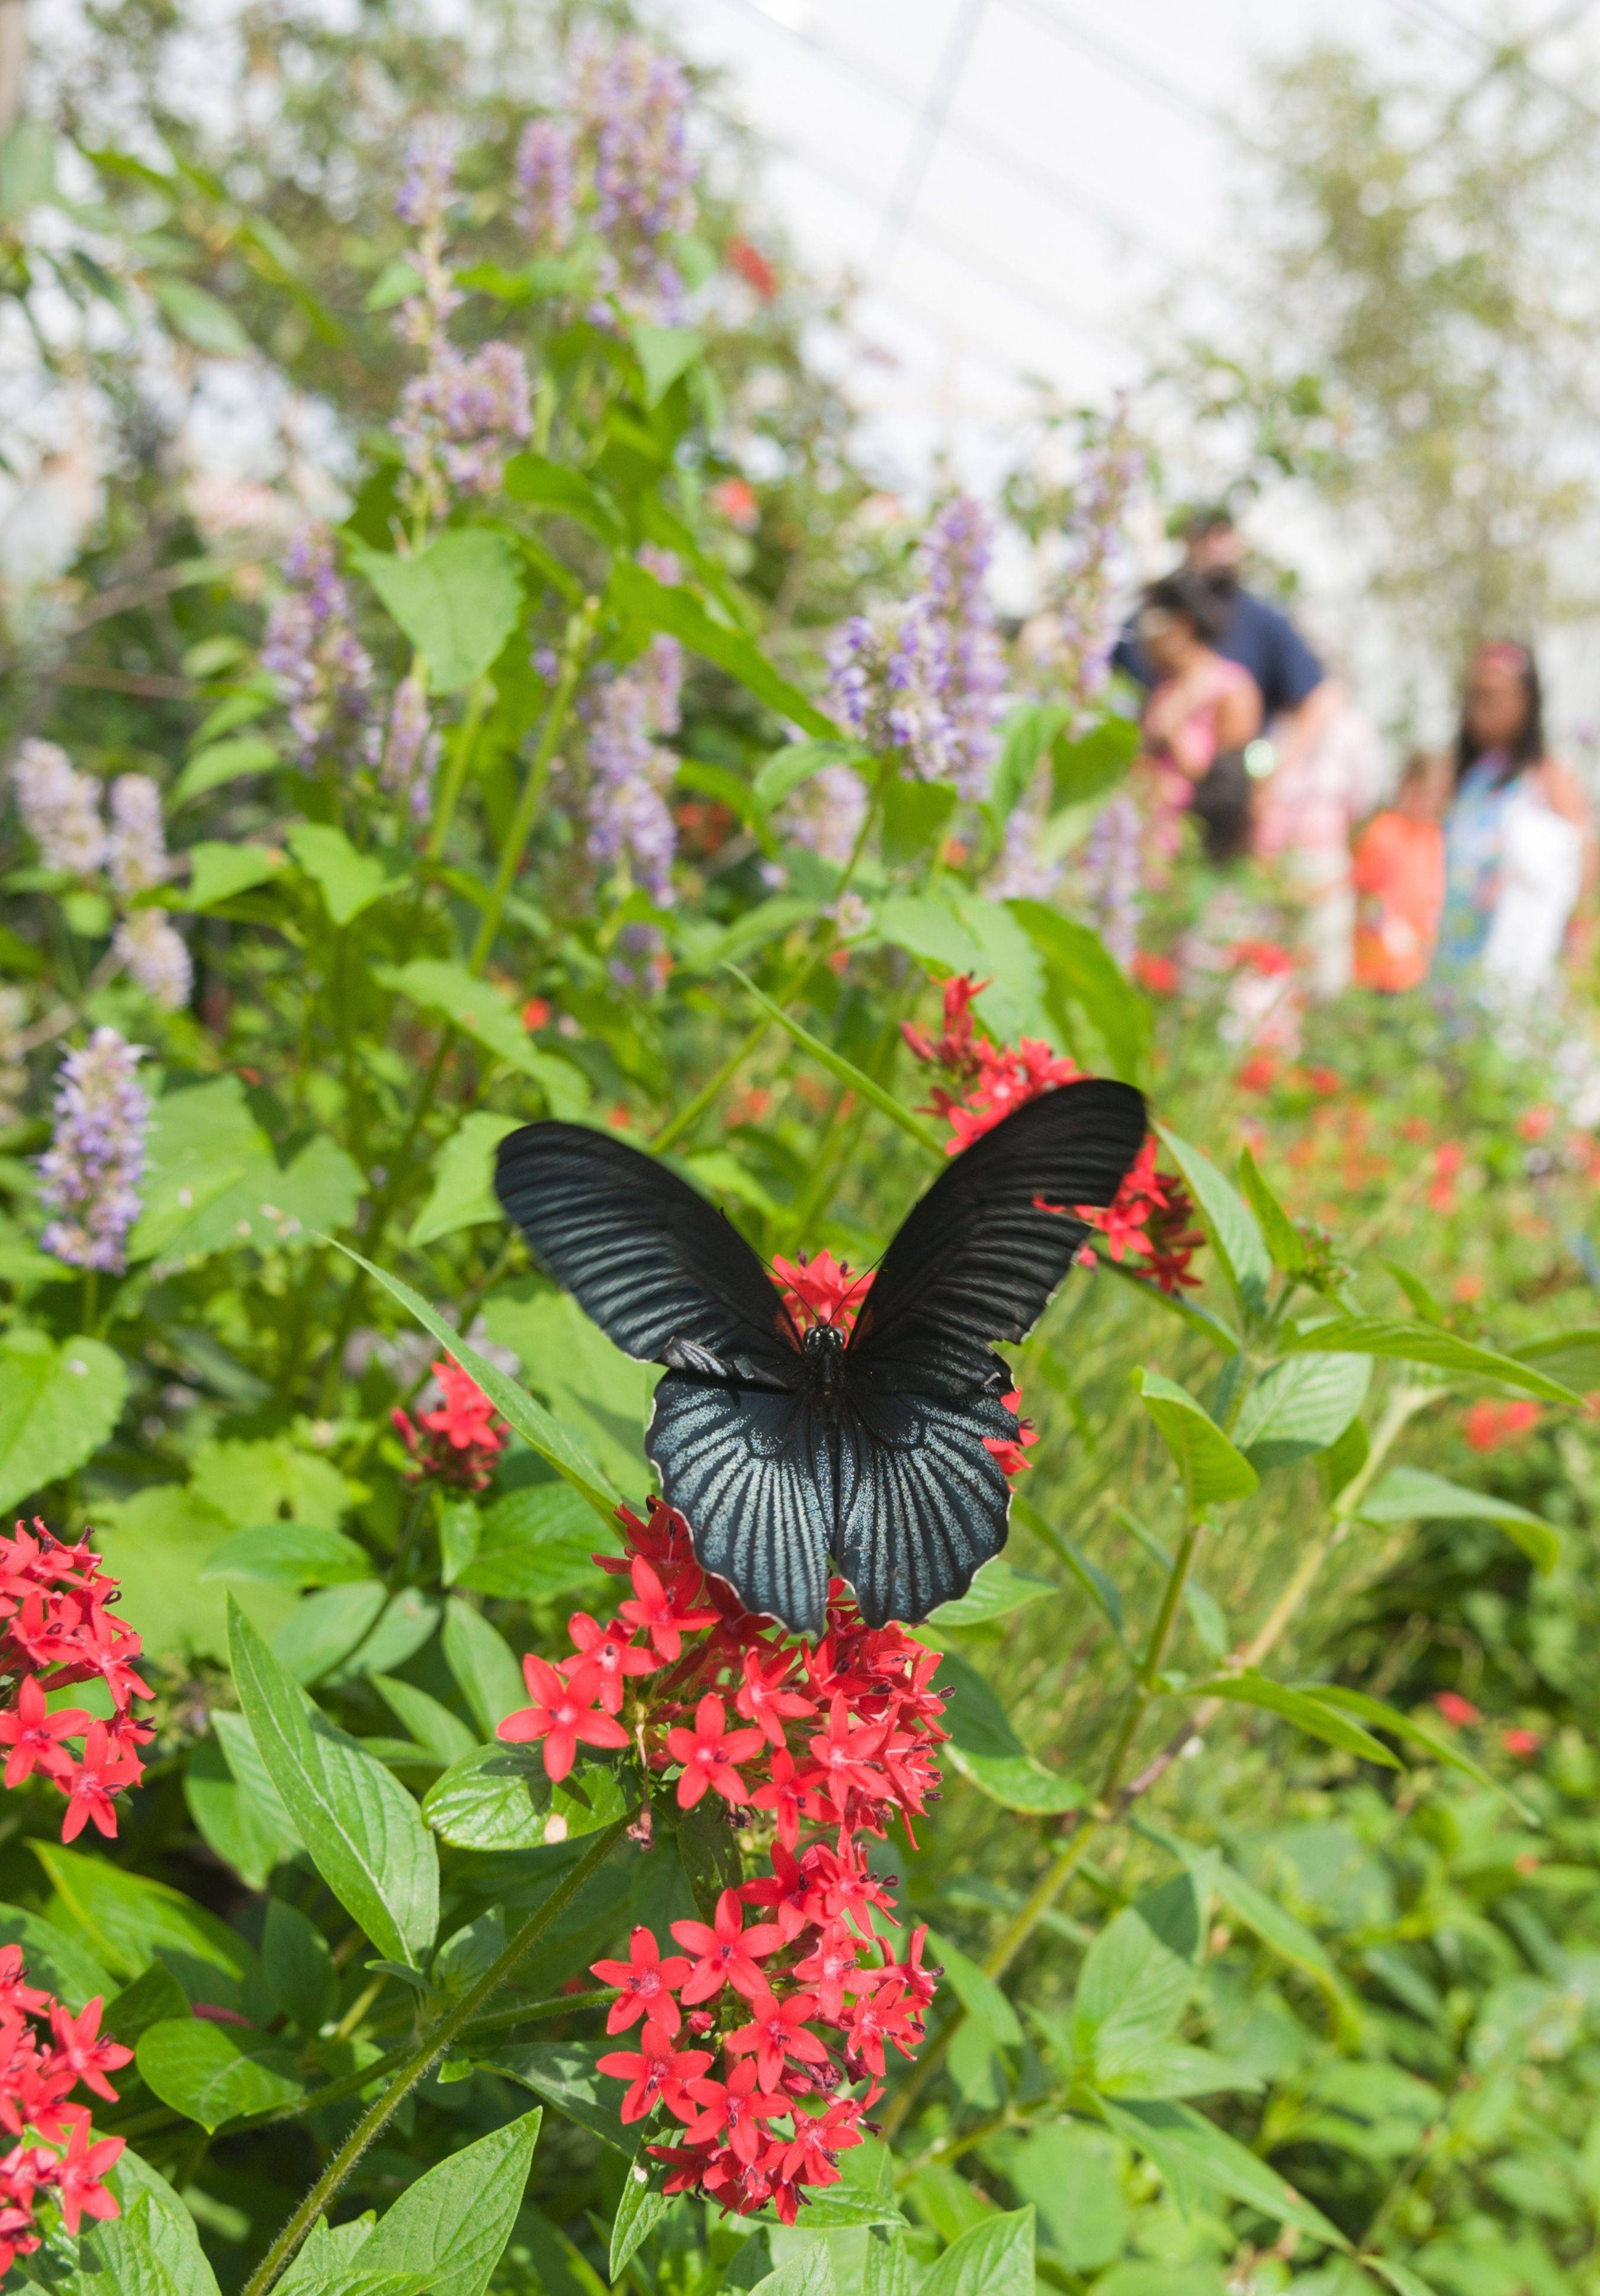 About 500 butterflies from around the world are around an any given time during the Chicago Botanic Garden's Butterflies & Blooms exhibit, open through Sept. 2.